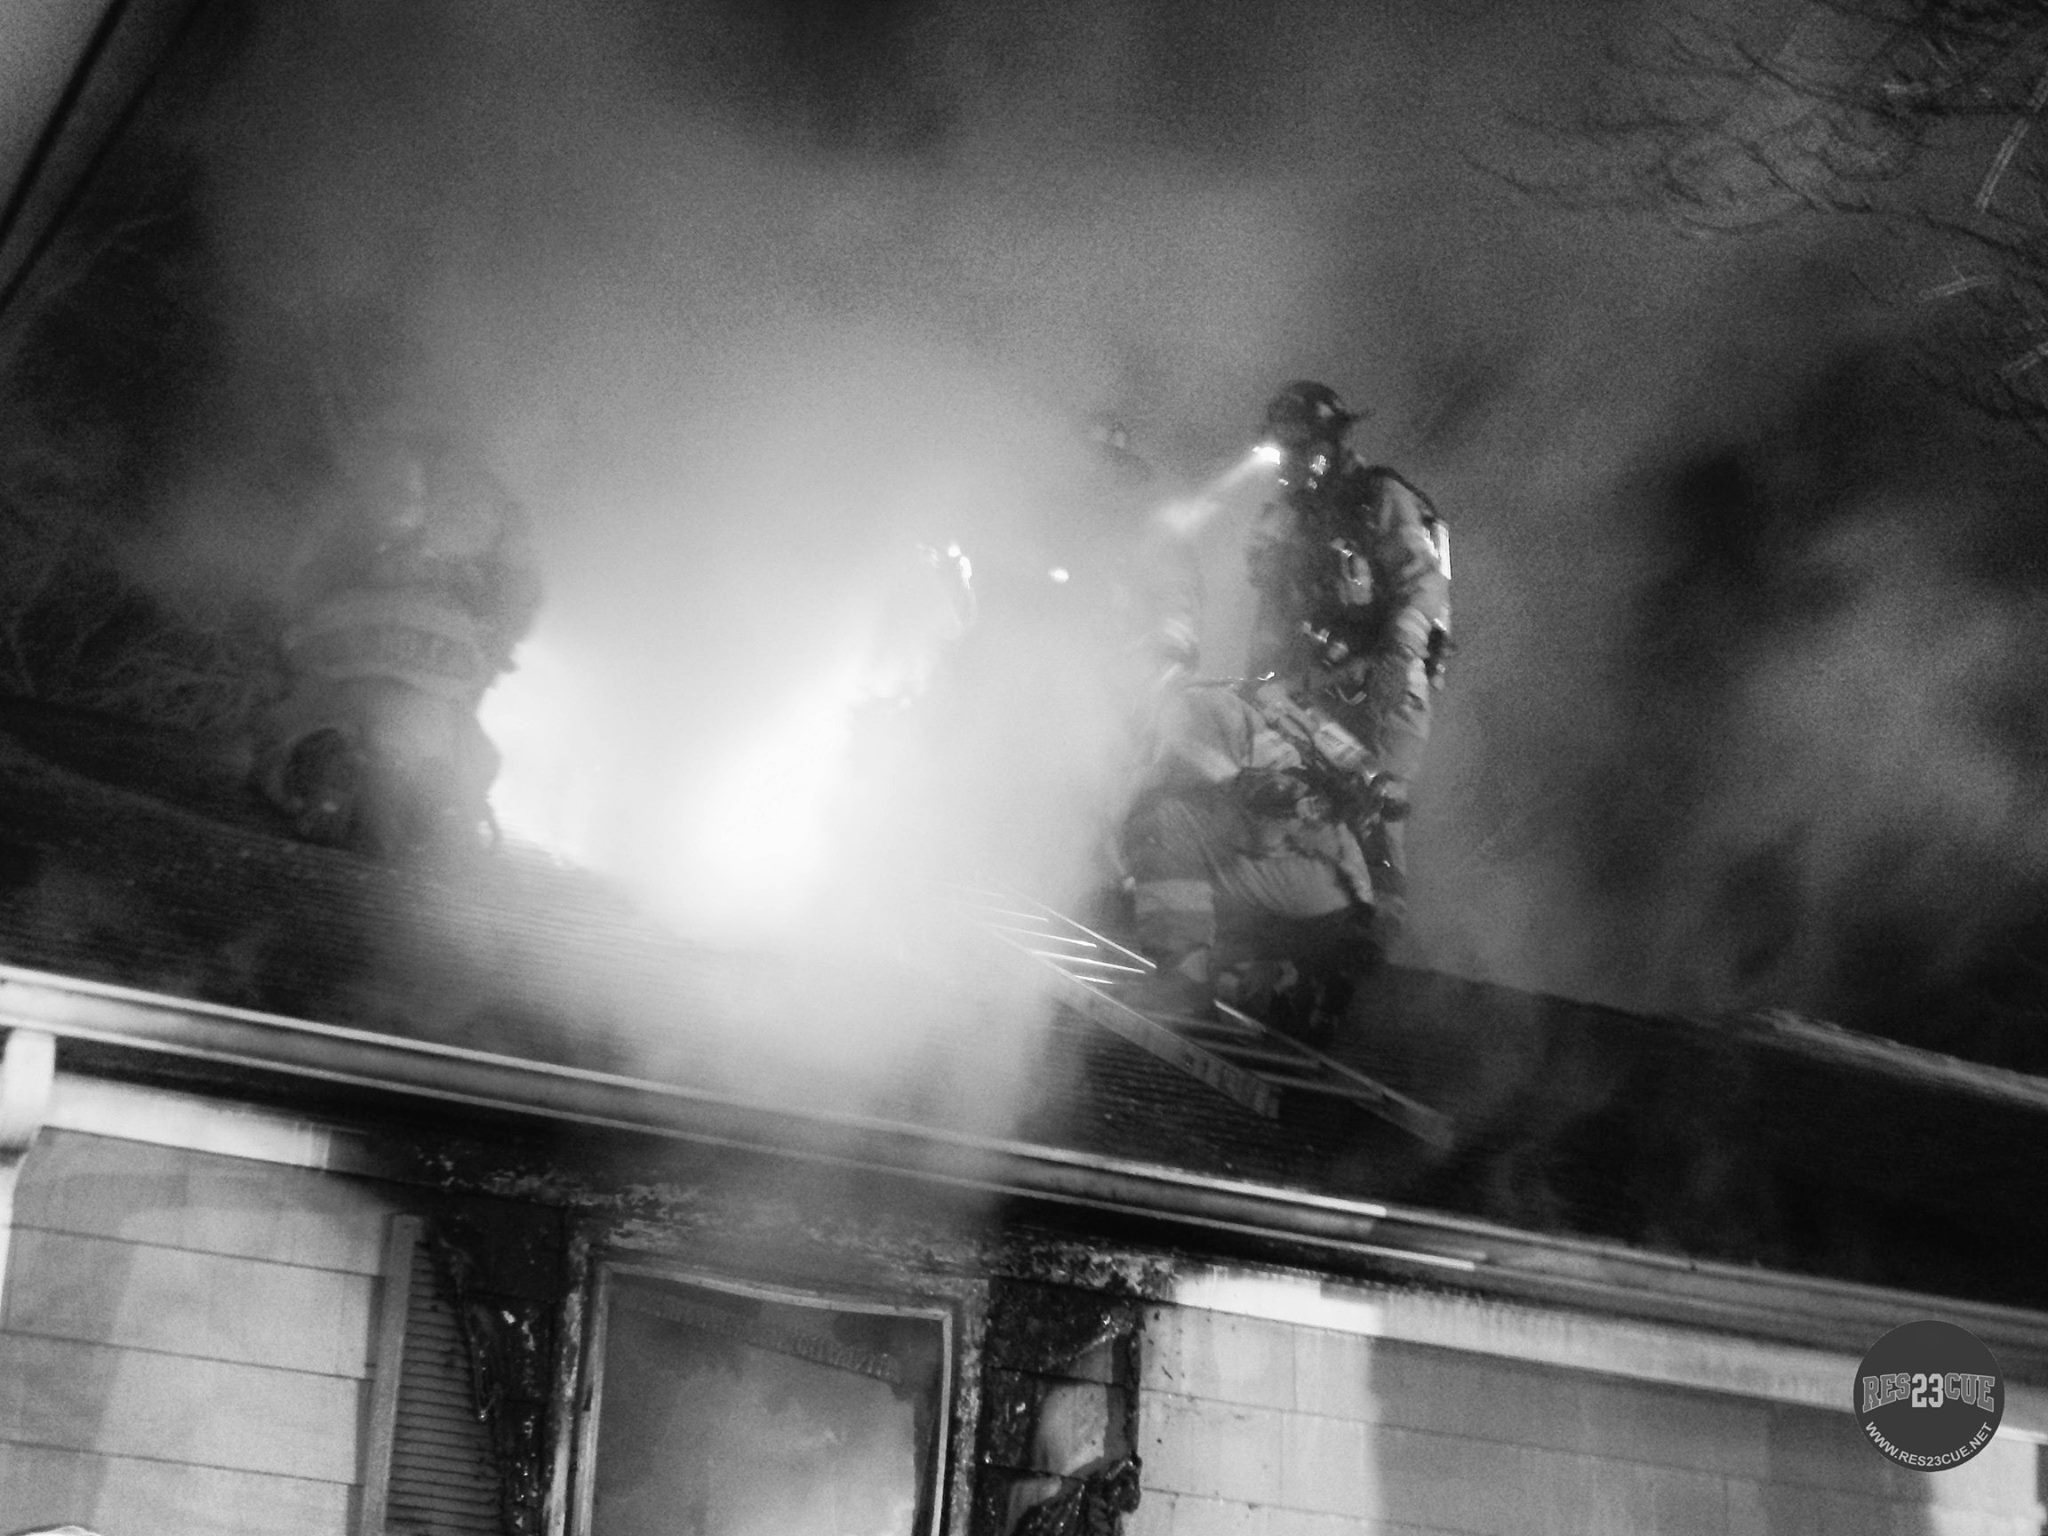 11/18/2015  362 Brimfield Road - House Fire  Firefighters ventilating the roof on the A side of the structure